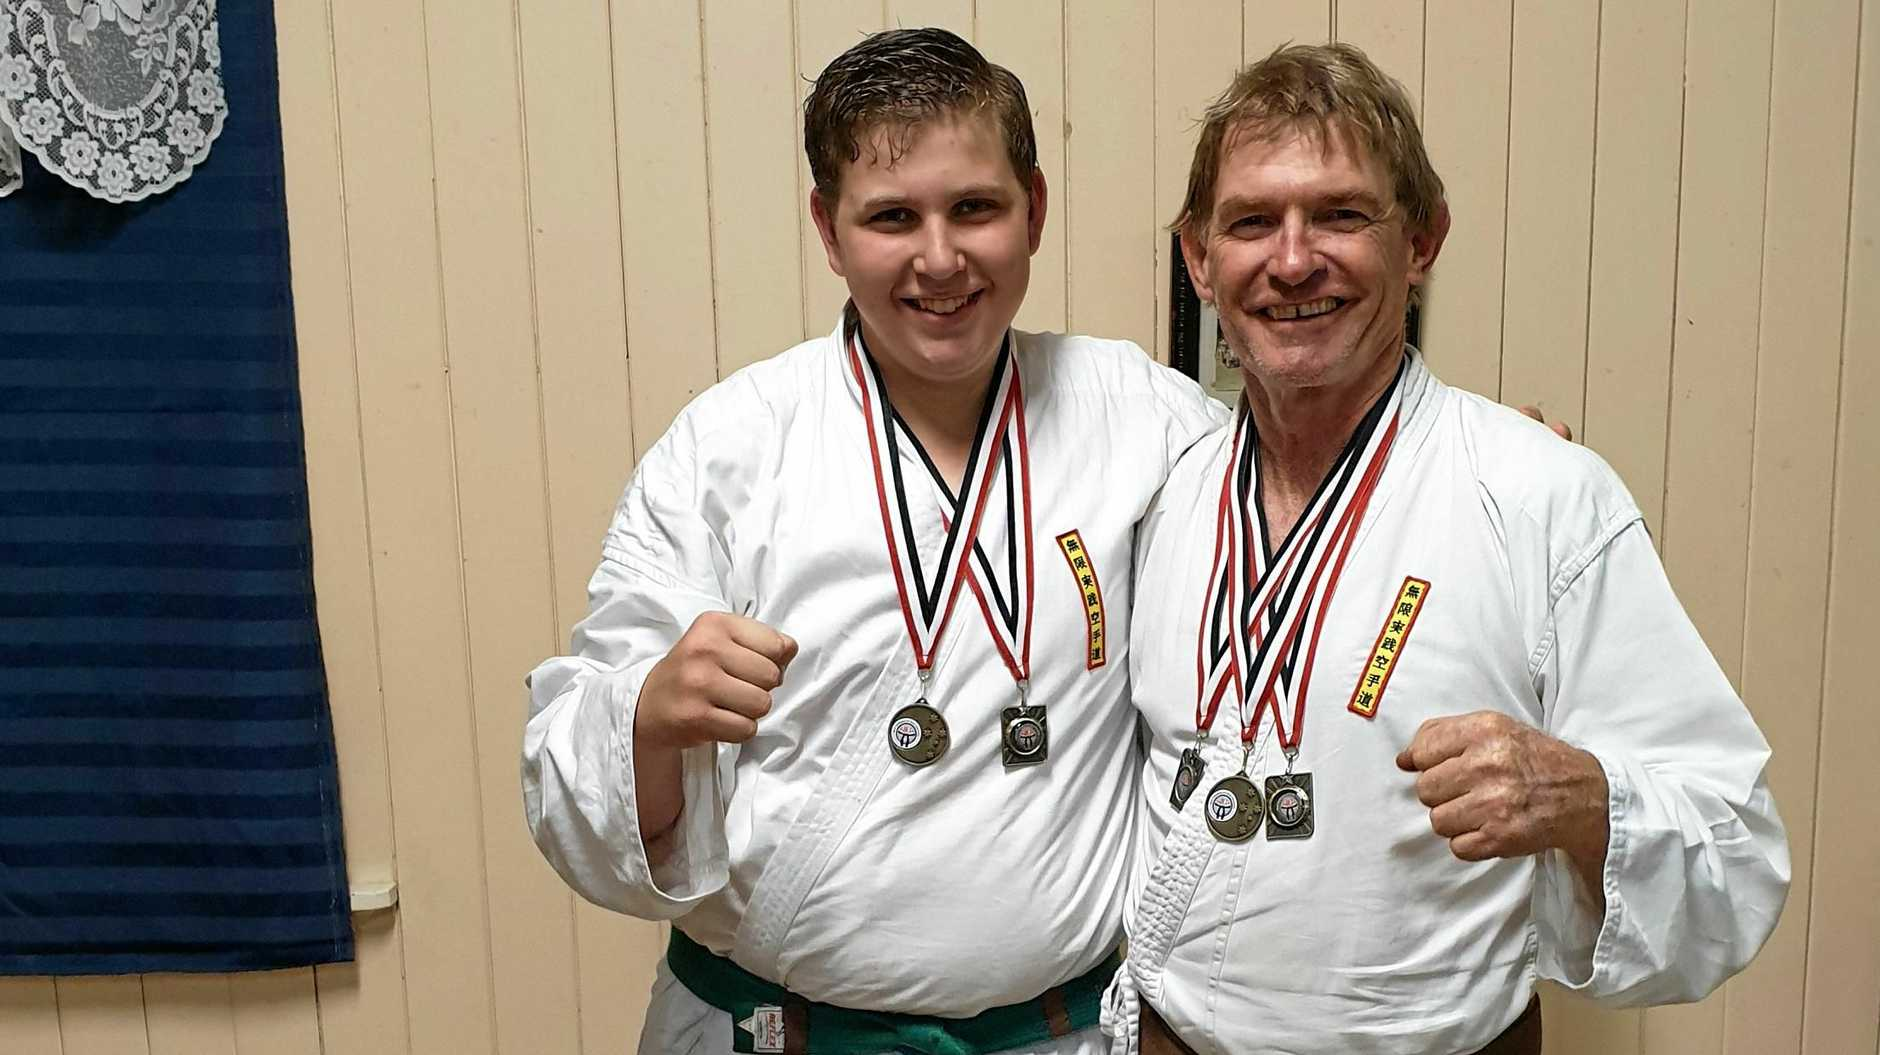 SPORT FOR ALL AGES: Mugen Gissen Karate Do Club senior students Isaac Waller and Owen Stewart compete at the Annual World Karate and Kickboxing Association's tournament held in Toowoomba on June 1.